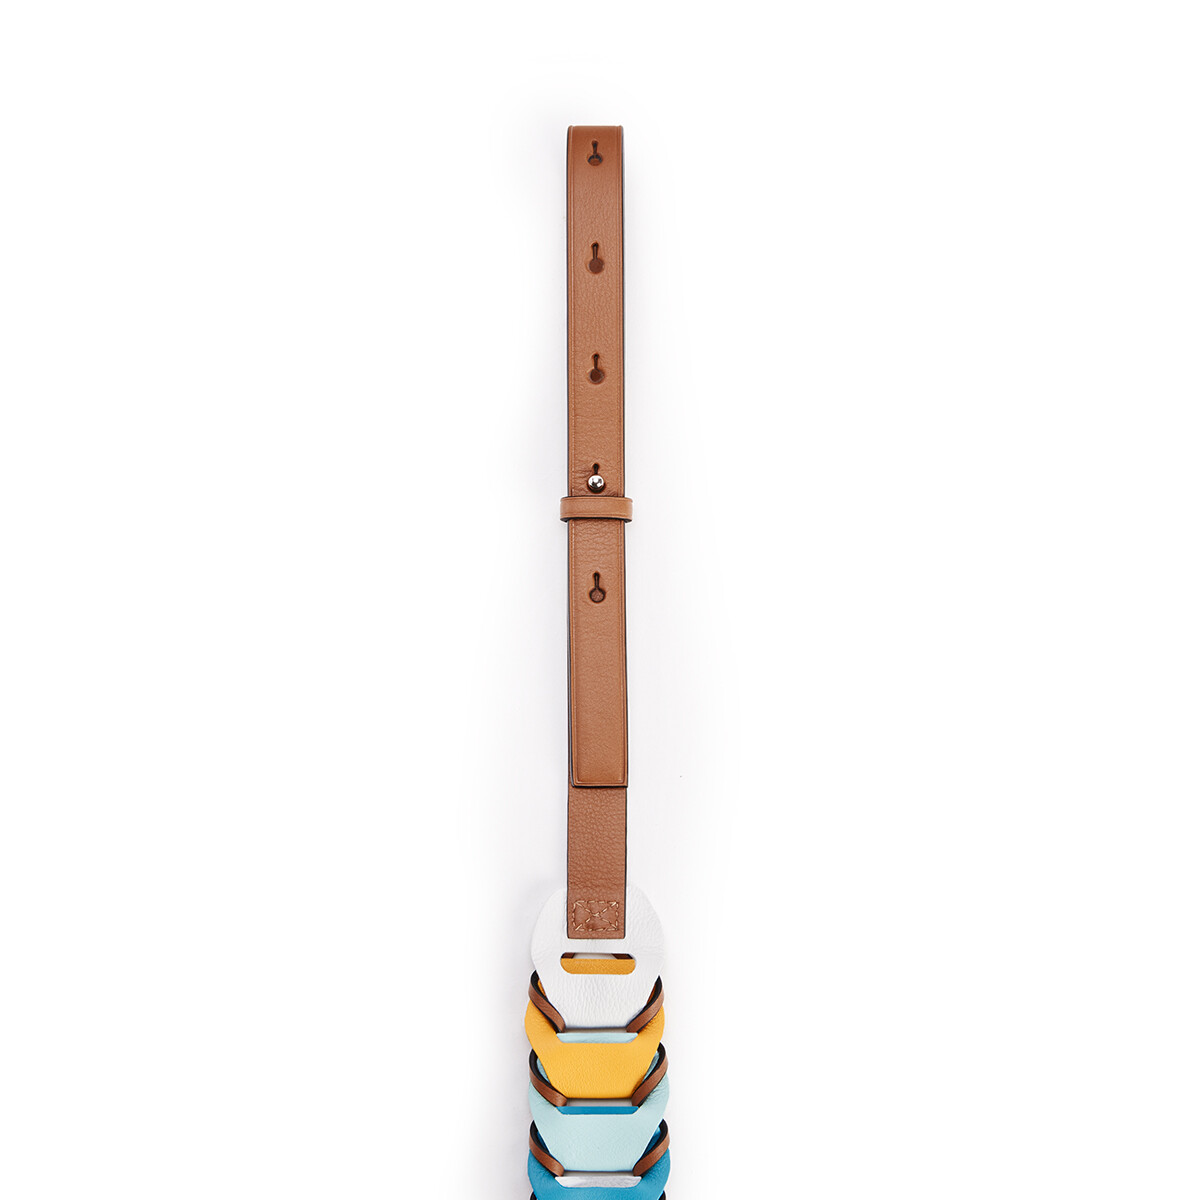 LOEWE Circles Loop Strap In Classic Calfskin Soft White/Dark Peacock Blue front